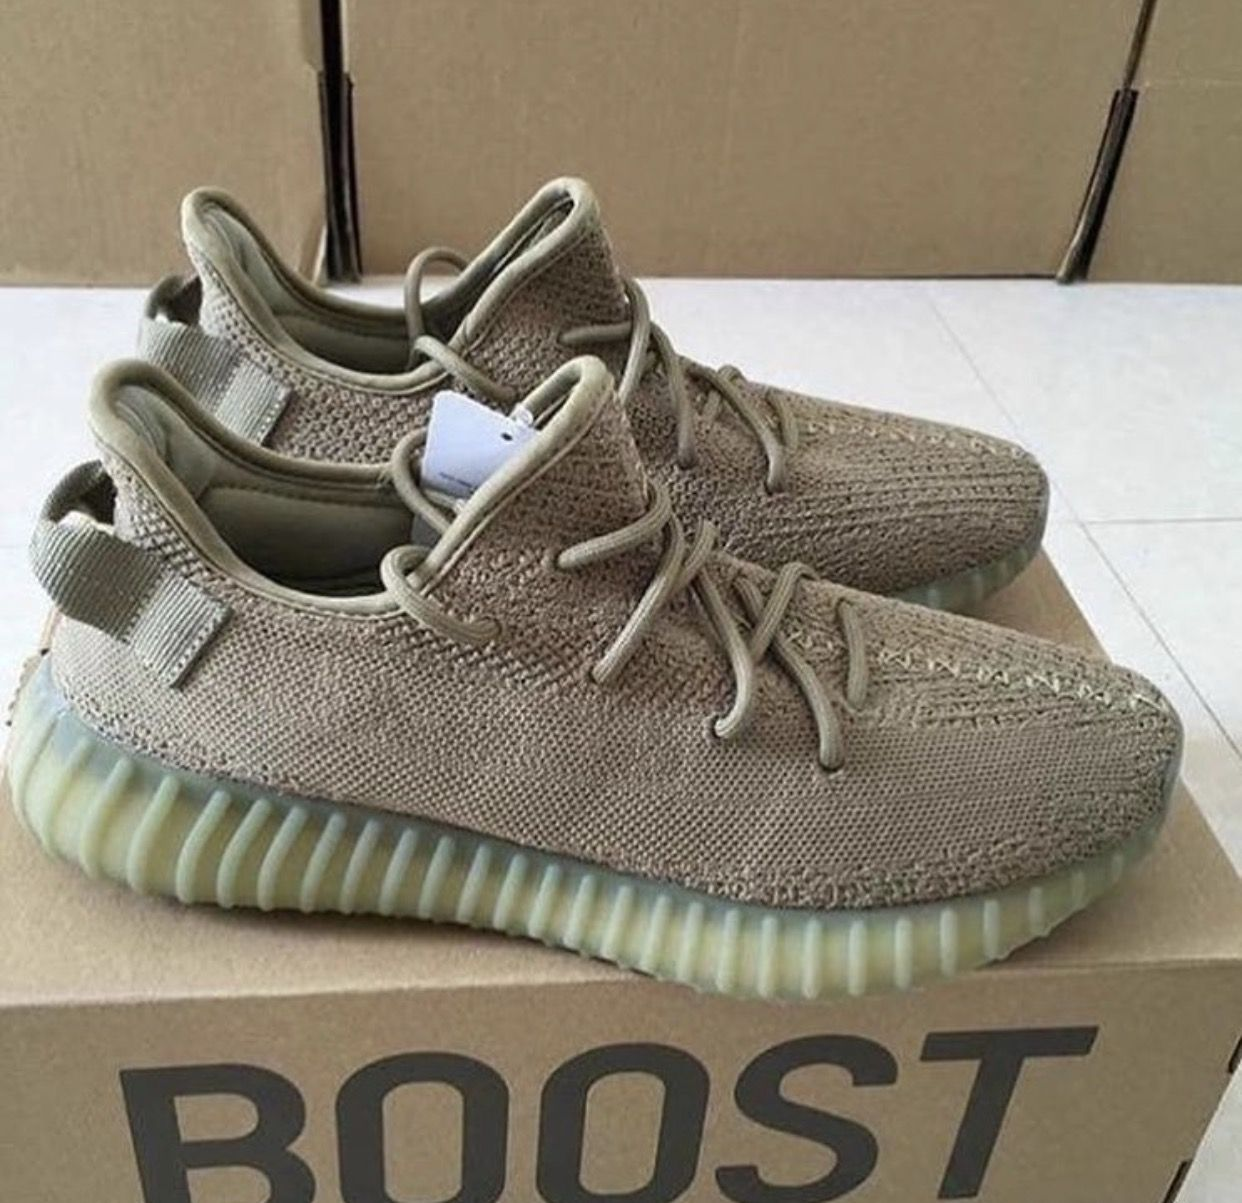 faec90081a3b Releasing in June 2017. Adidas Yeezy Boost 350 V2